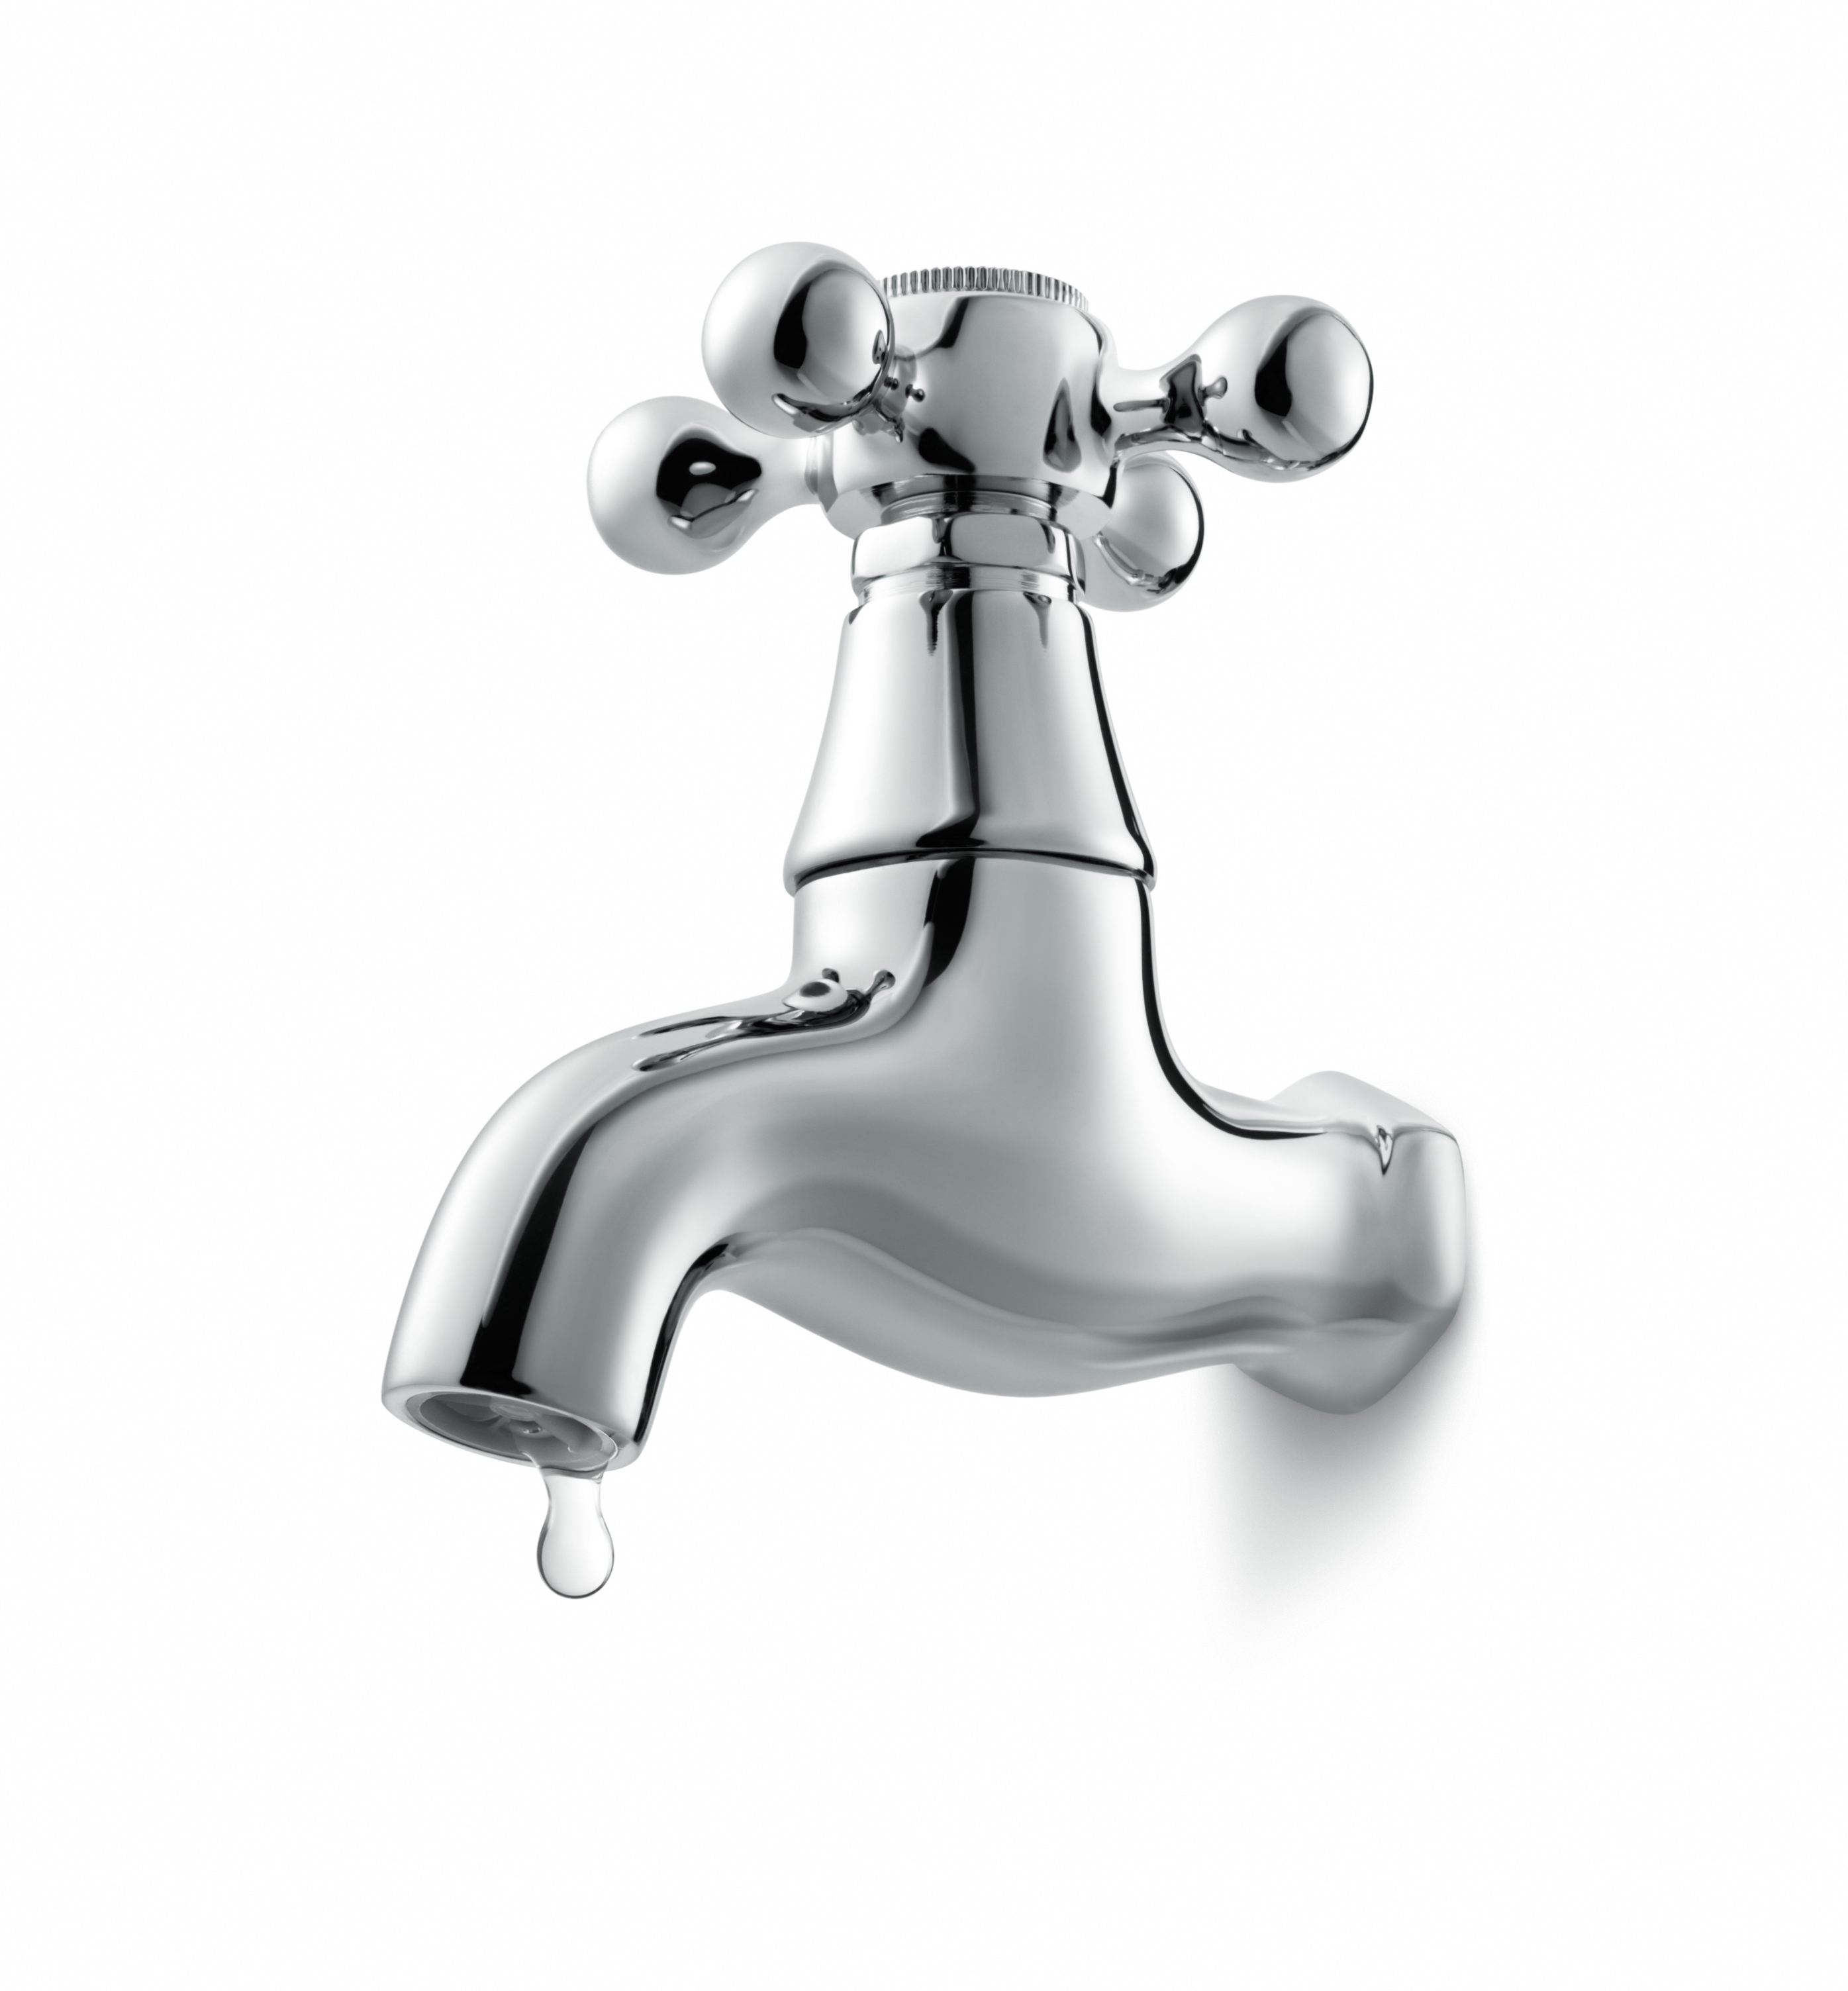 all taps after use. Do not keep the tap water running unnecessarily #5C6F6F